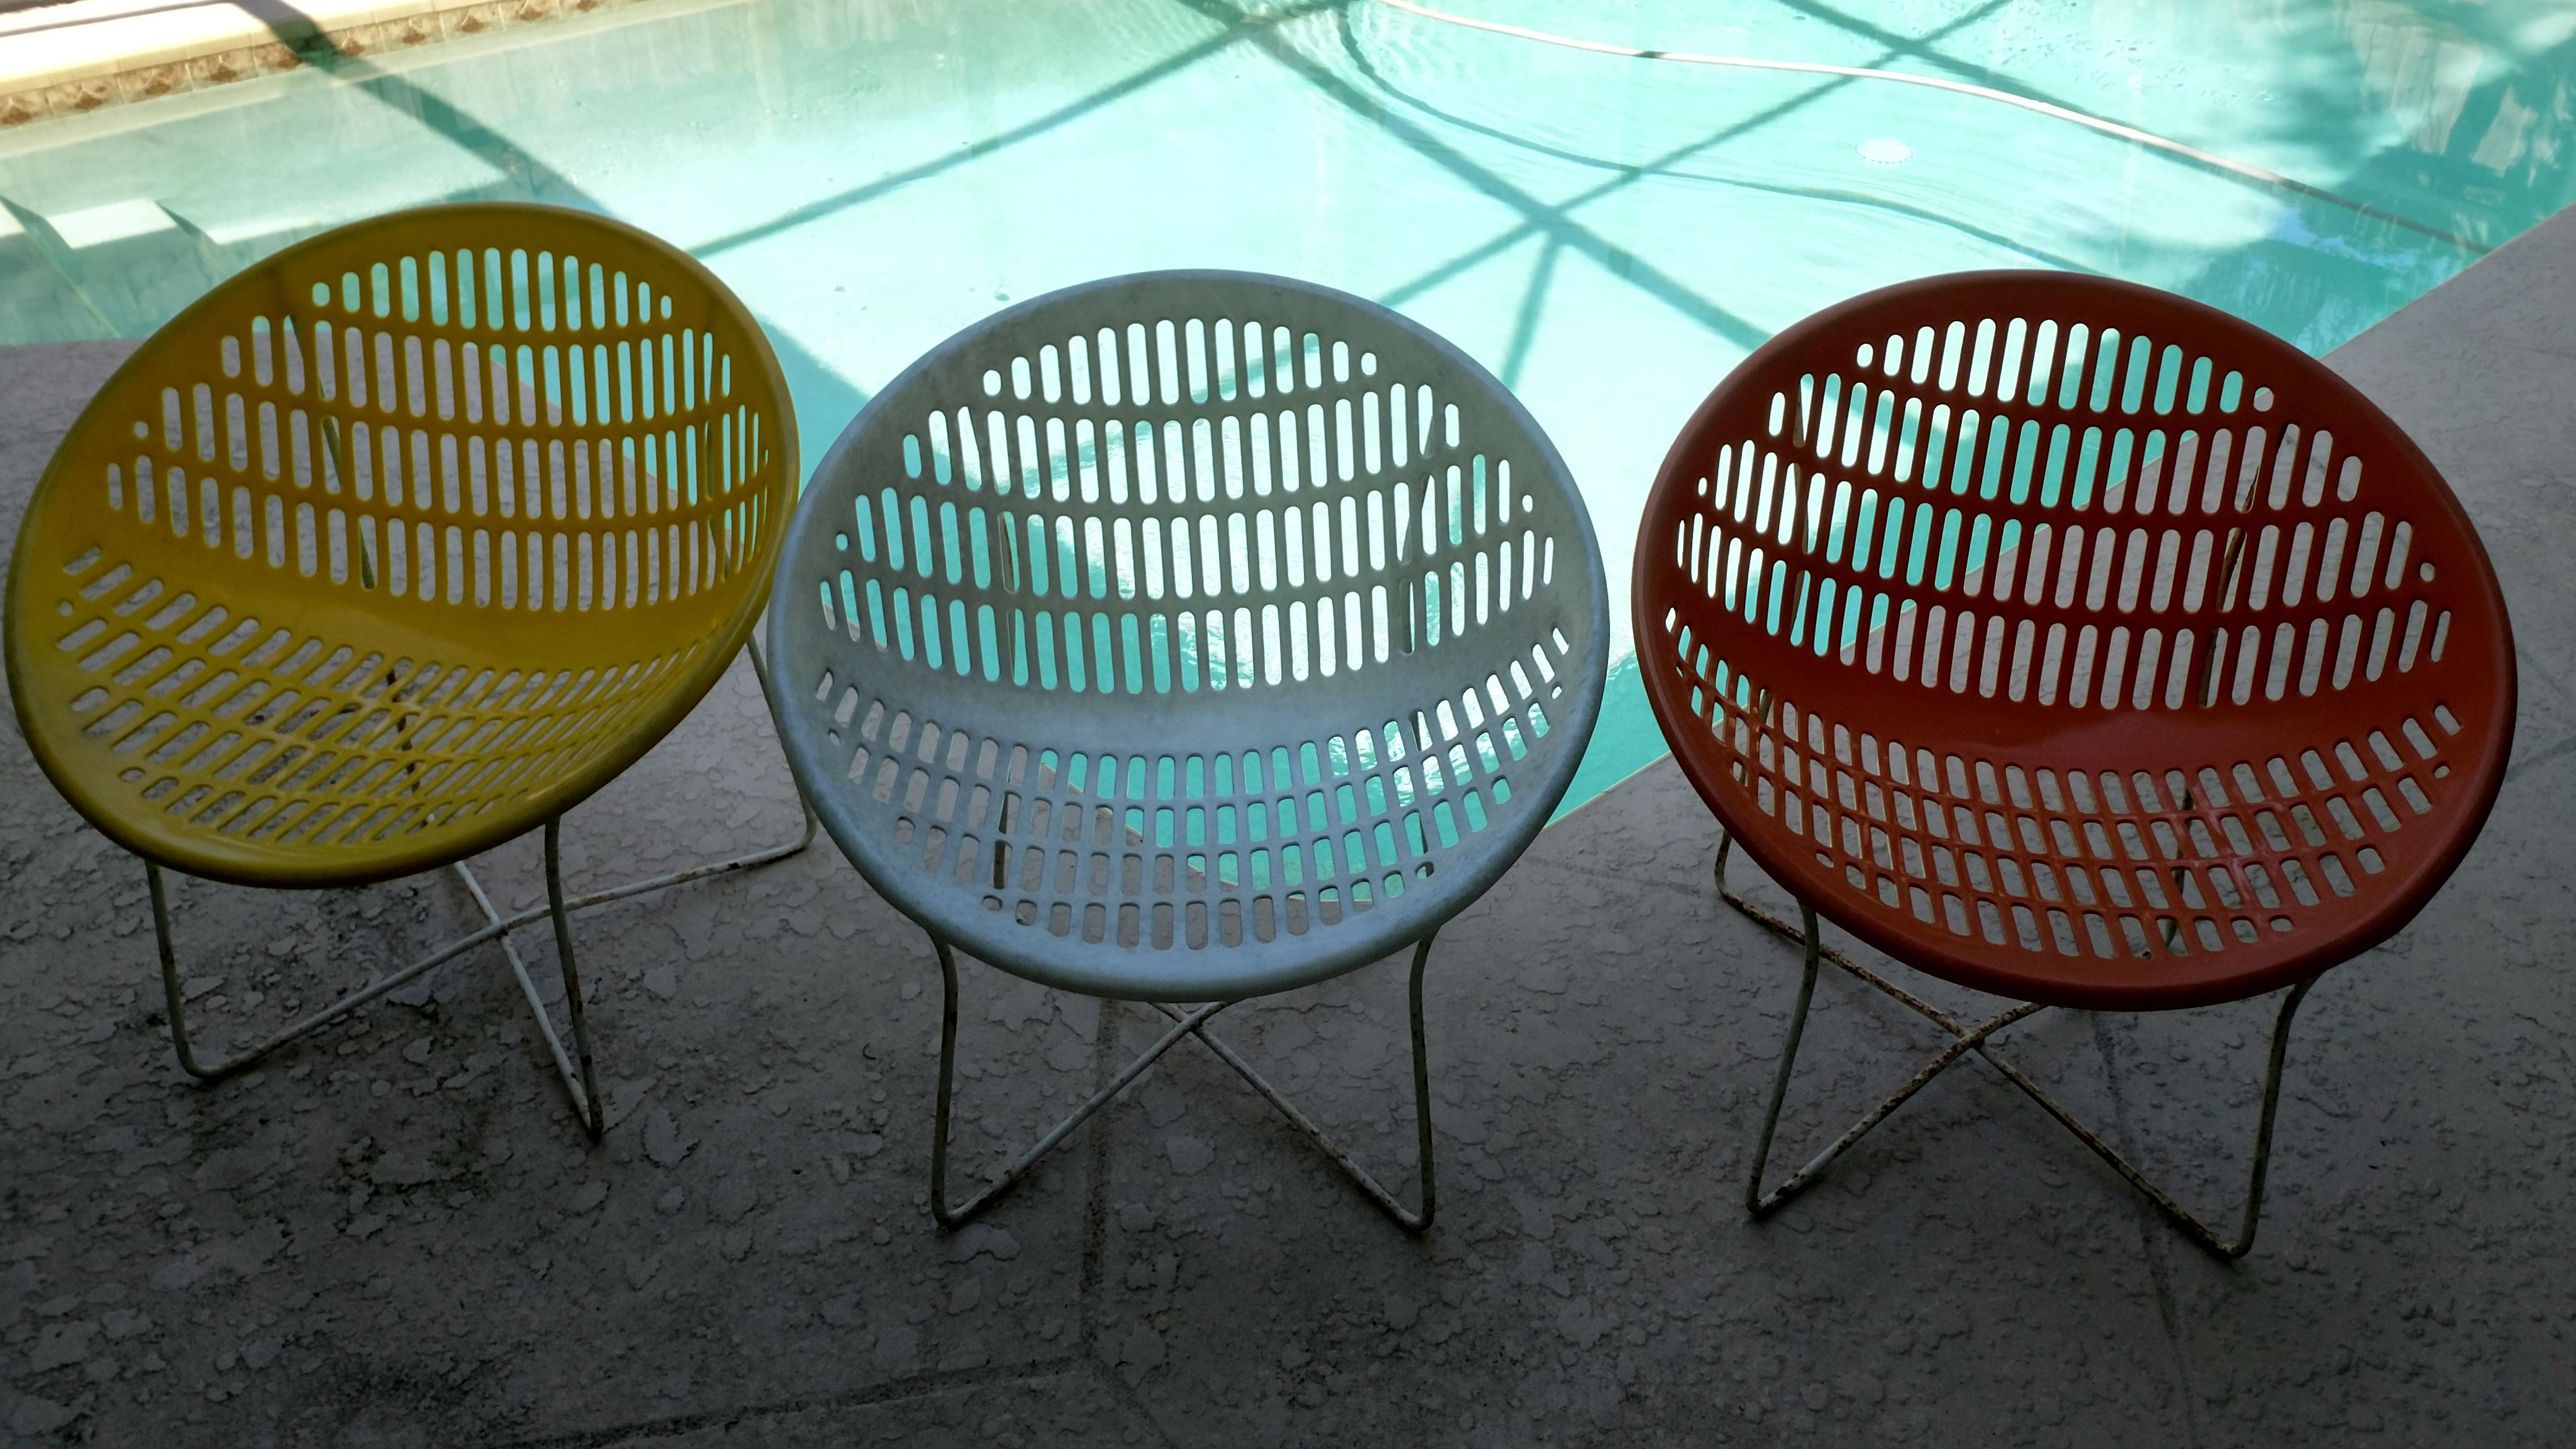 Delicieux Fabio Fabiani And Michelange Panzini Solair Chairs   Set Of 3   Image 2 Of 4